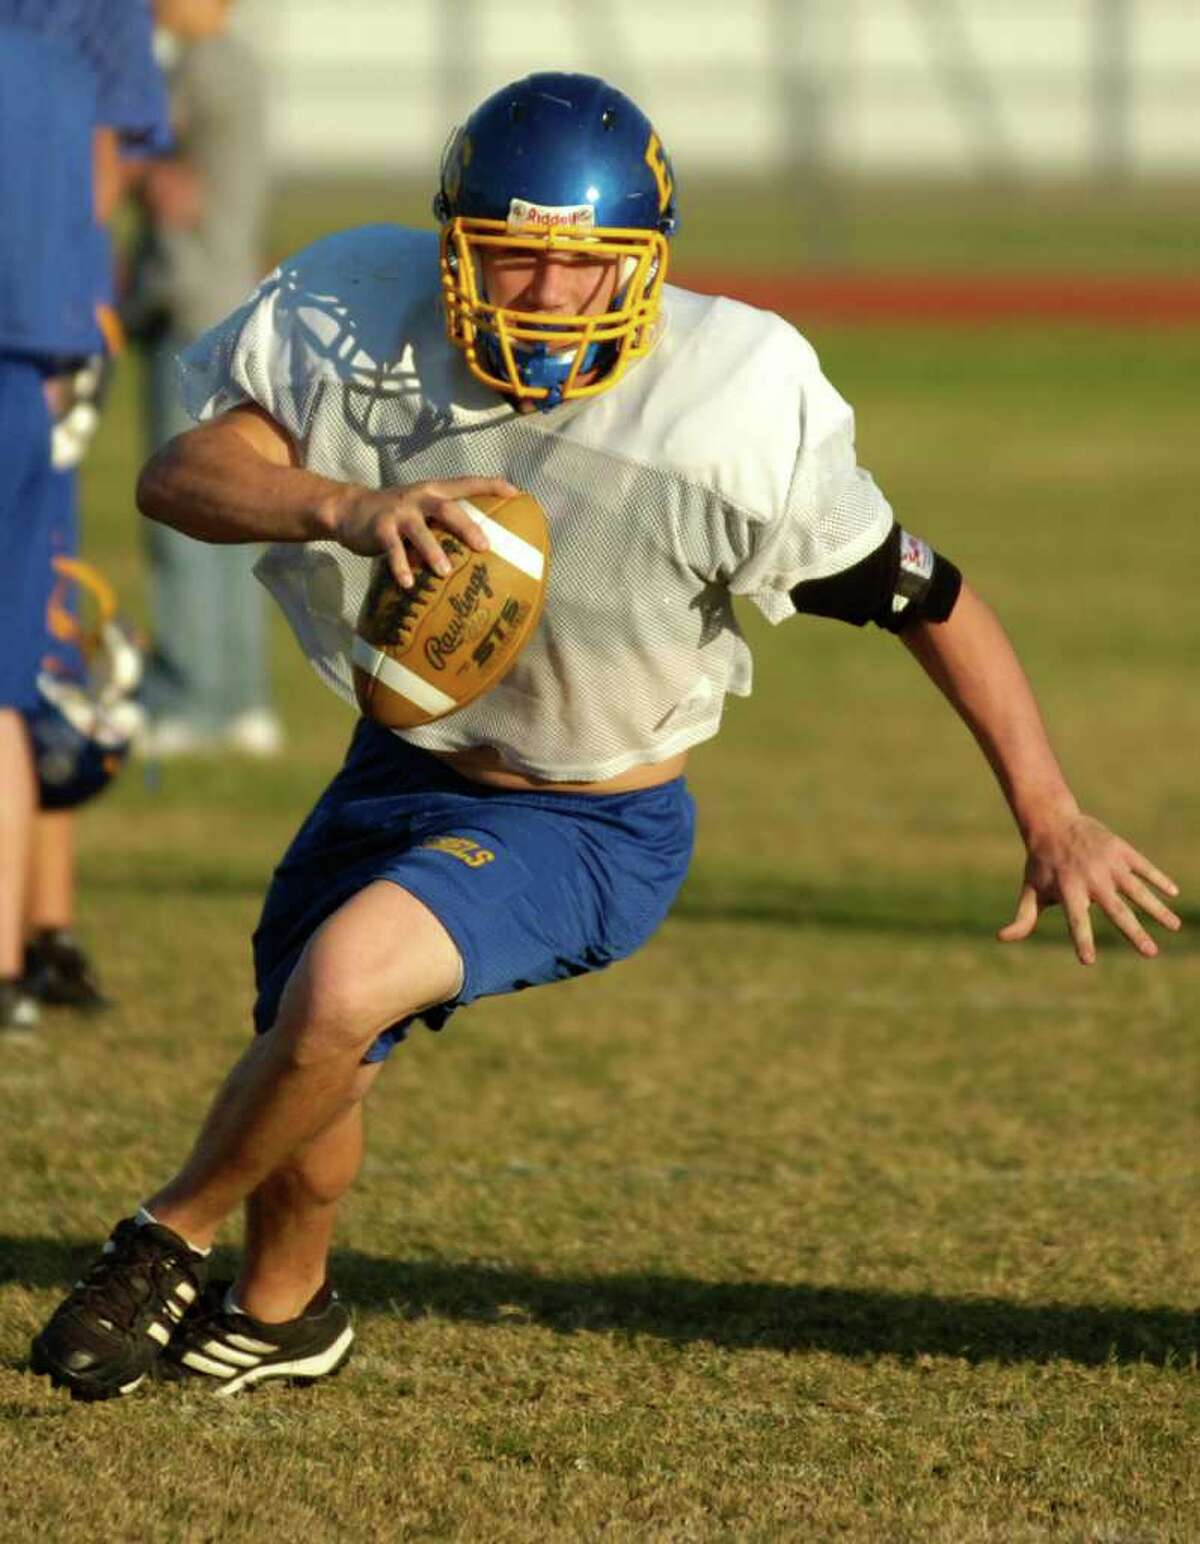 Evadale High School quarterback Billy Nichols works on a run play with his teammates on Wednesday at football practice. The Rebels travel to Rosenberg to take on D'Hanis in Class A Division II playoffs at Traylor Stadium on Friday night. November 17, 2010. Valentino Mauricio/The Enterprise